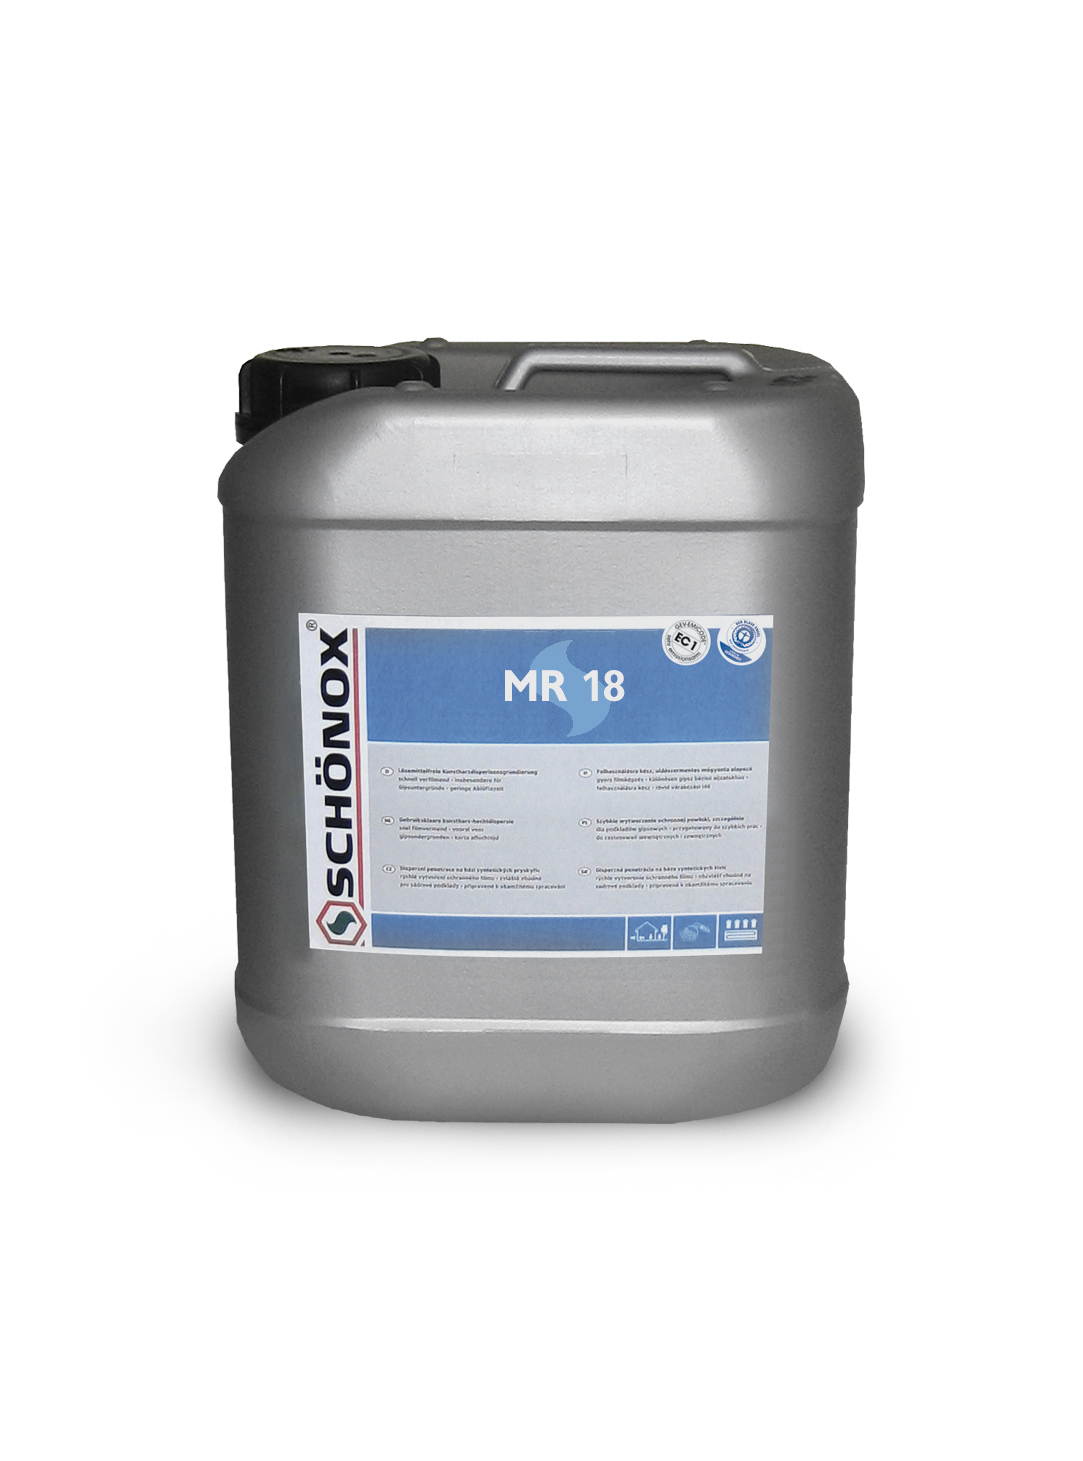 Image of MR 18 Product Bucket